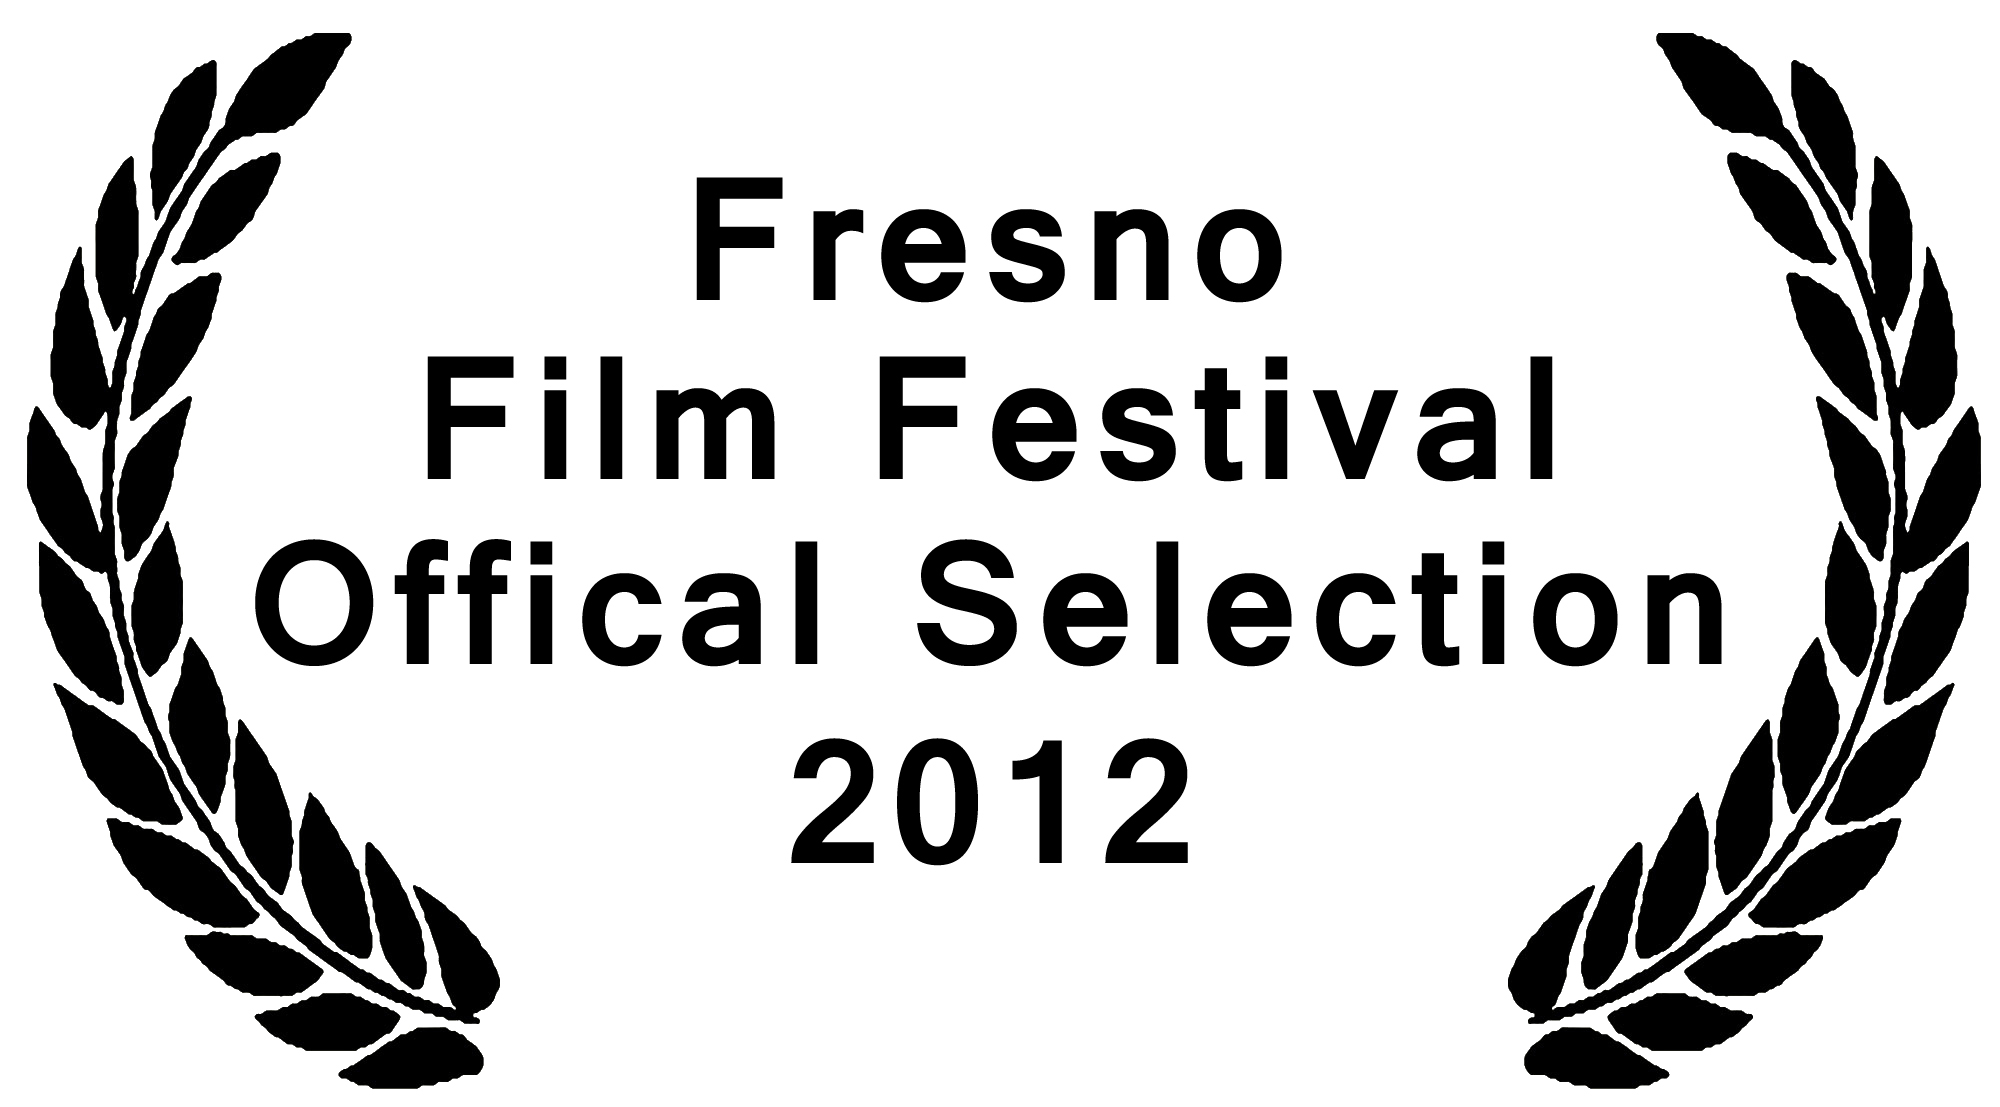 Official Selection 2012 Fresno Film Festival